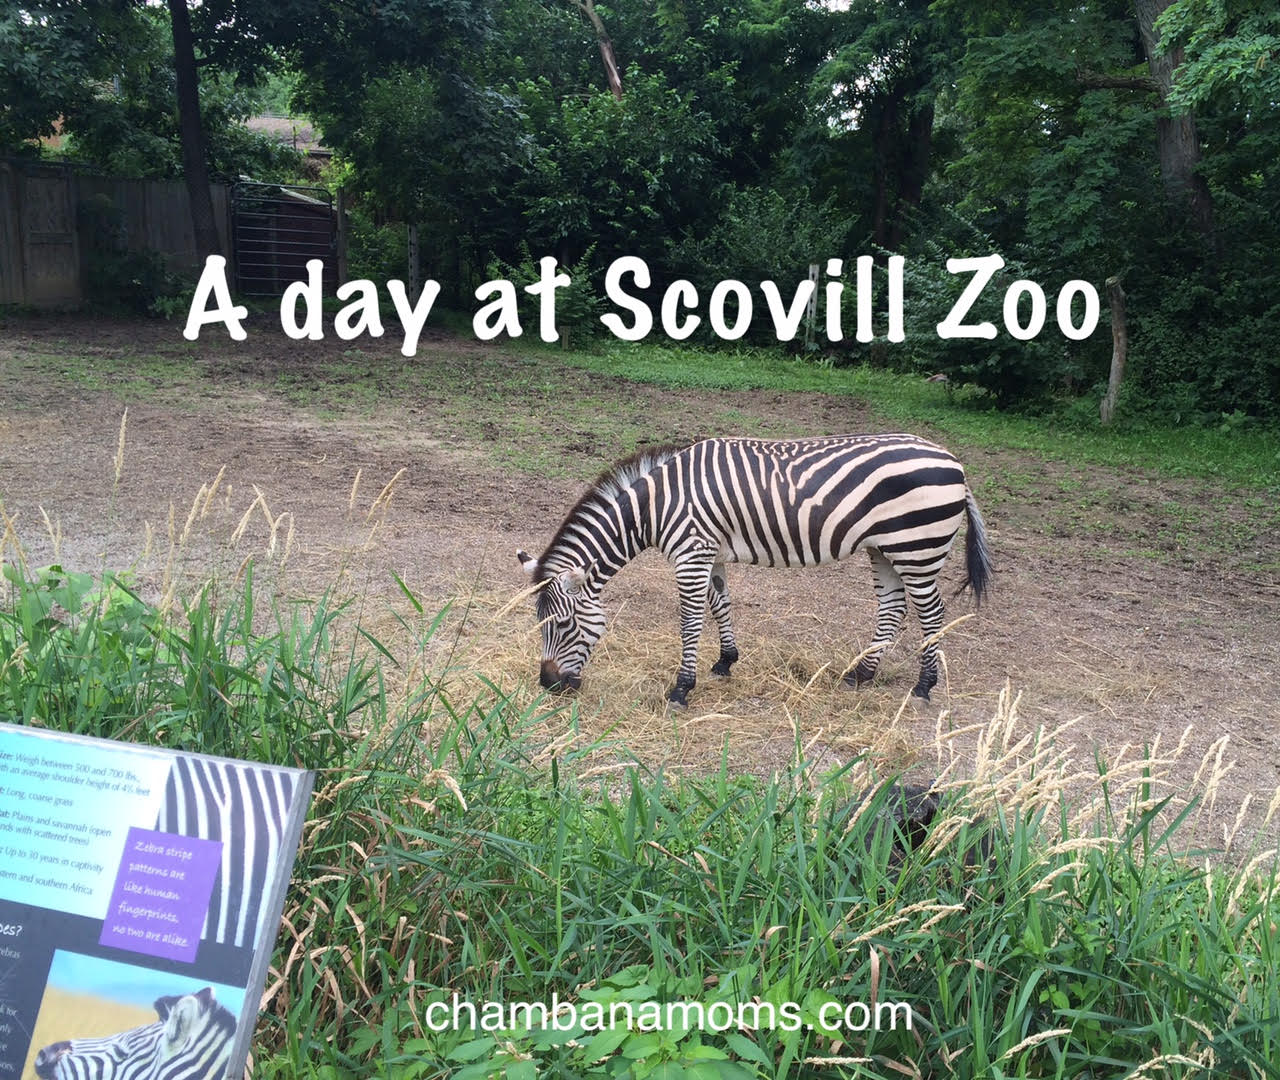 Penguins In Central Illinois Yes A Mom Reviews Scovill Zoo